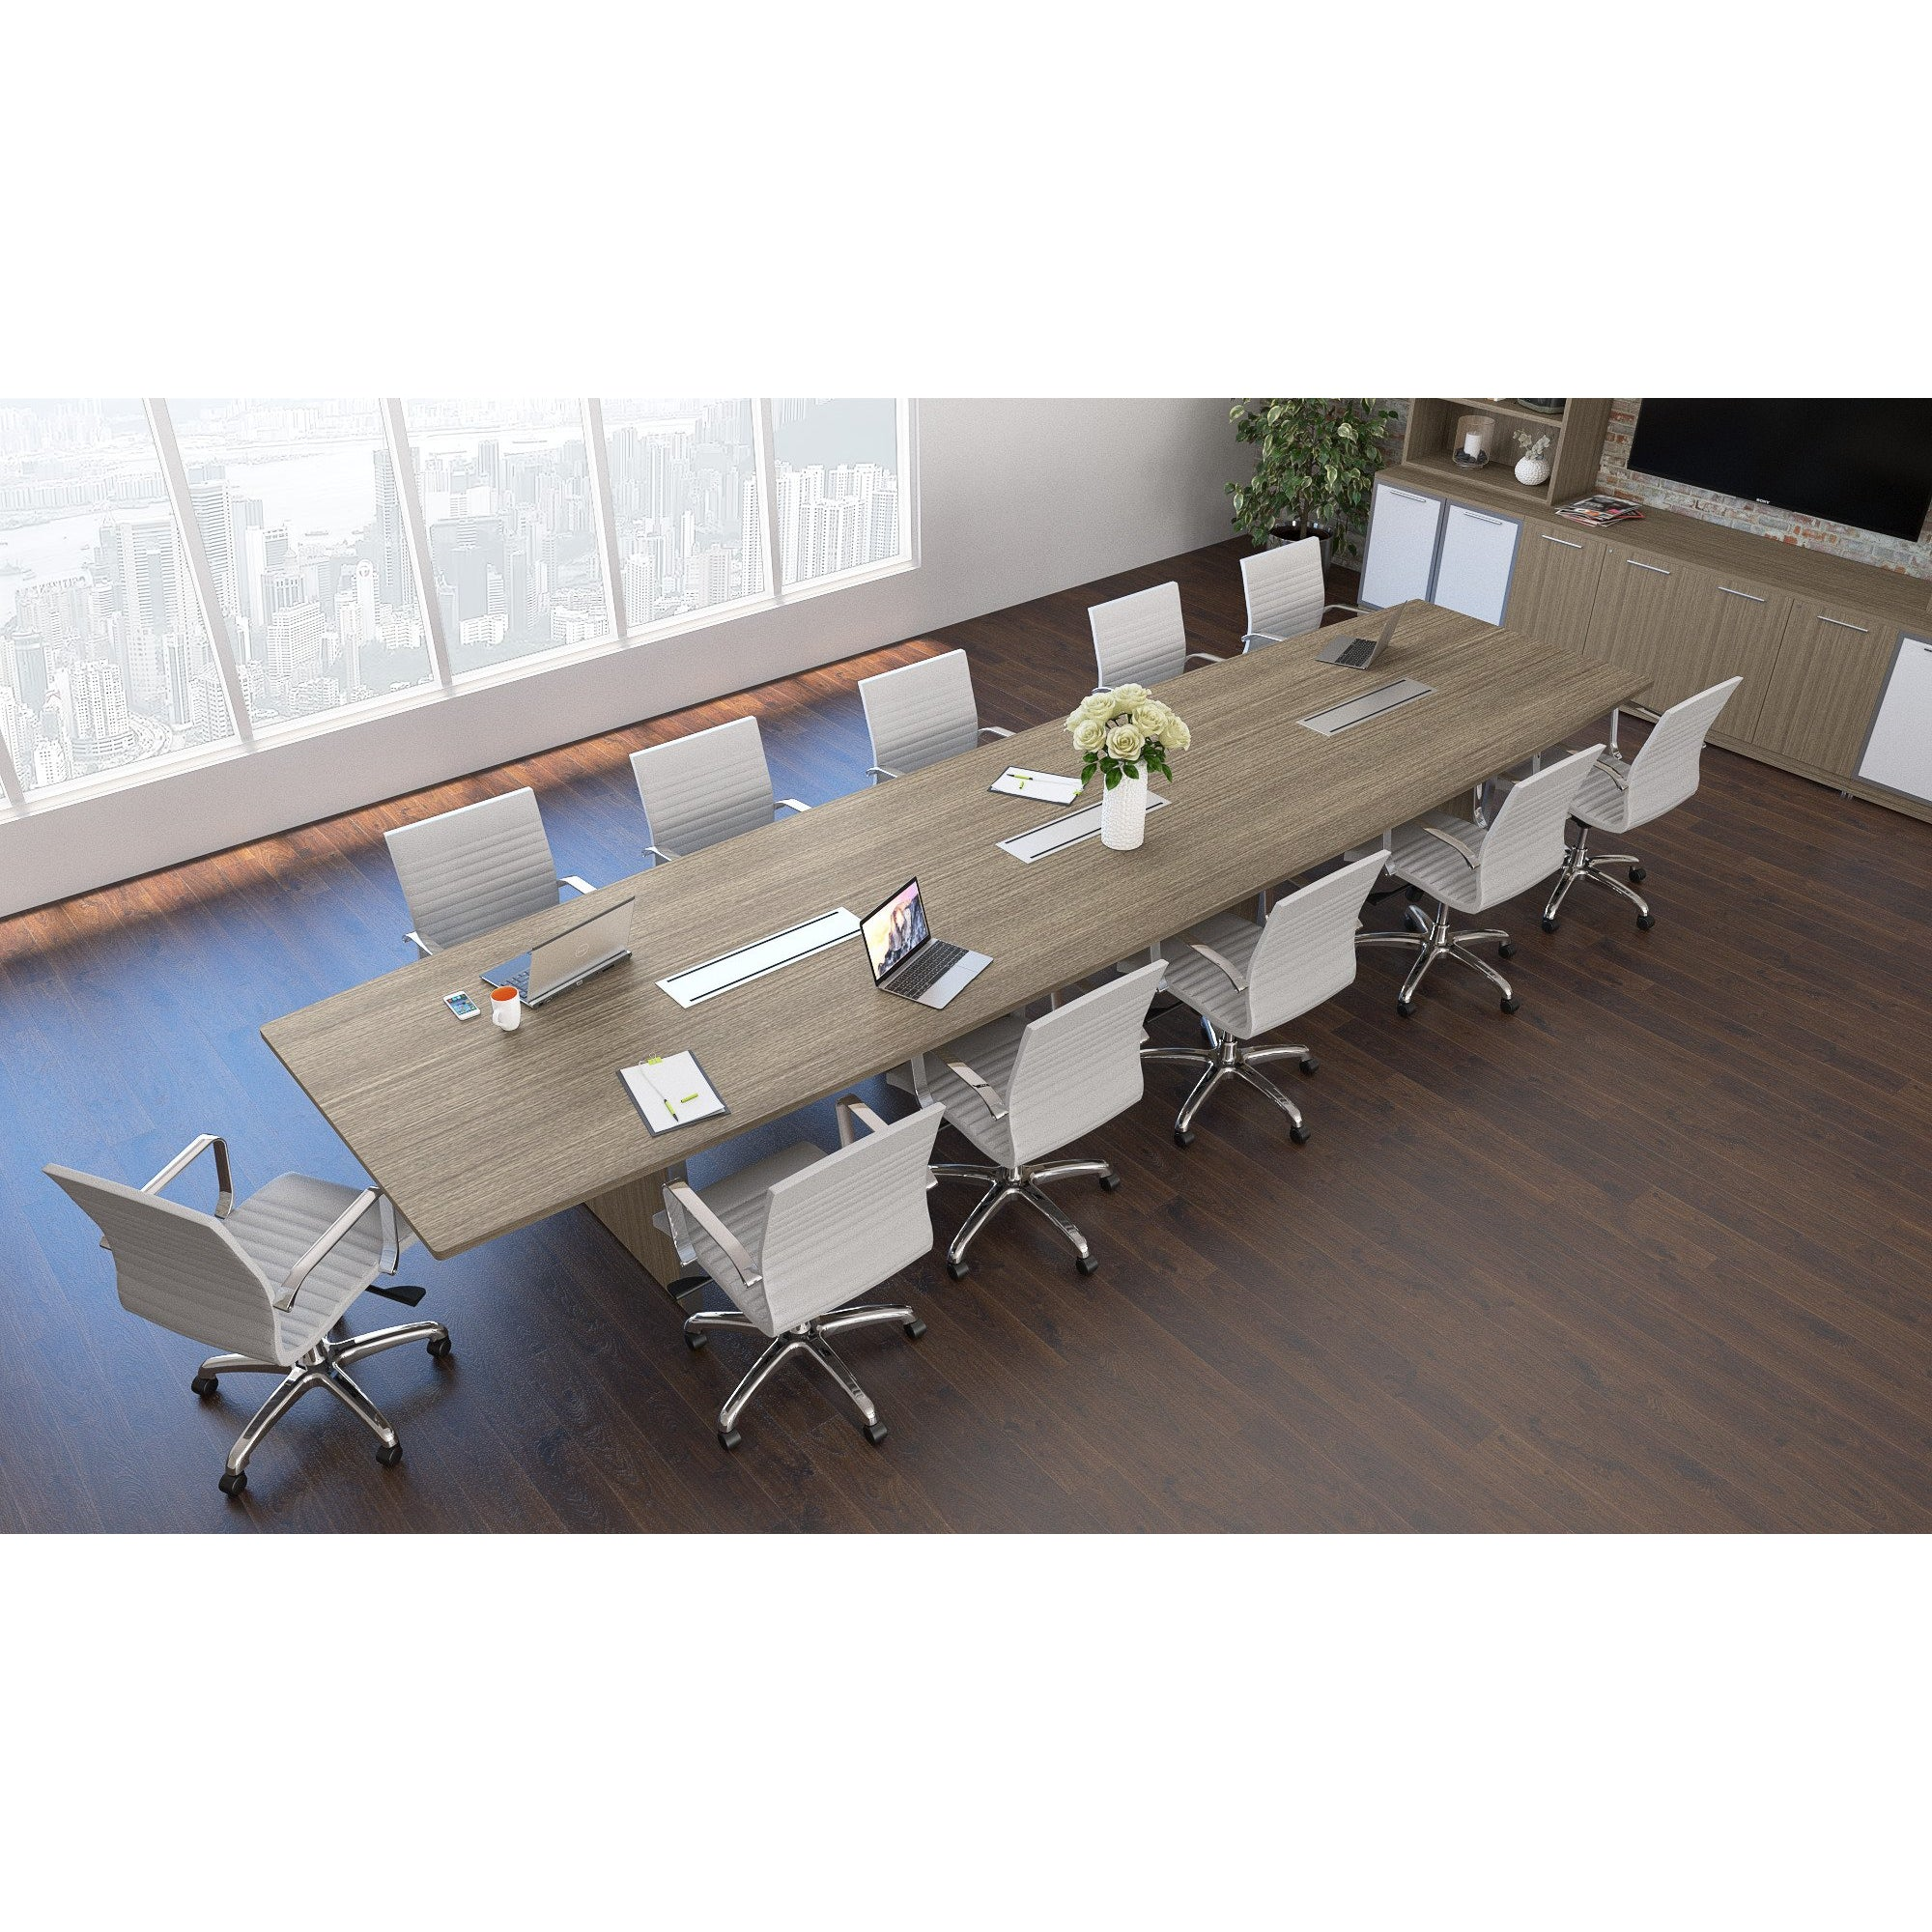 Chiarezza Deluxe Conference Table (8 ft, 10 ft, or 12 ft)